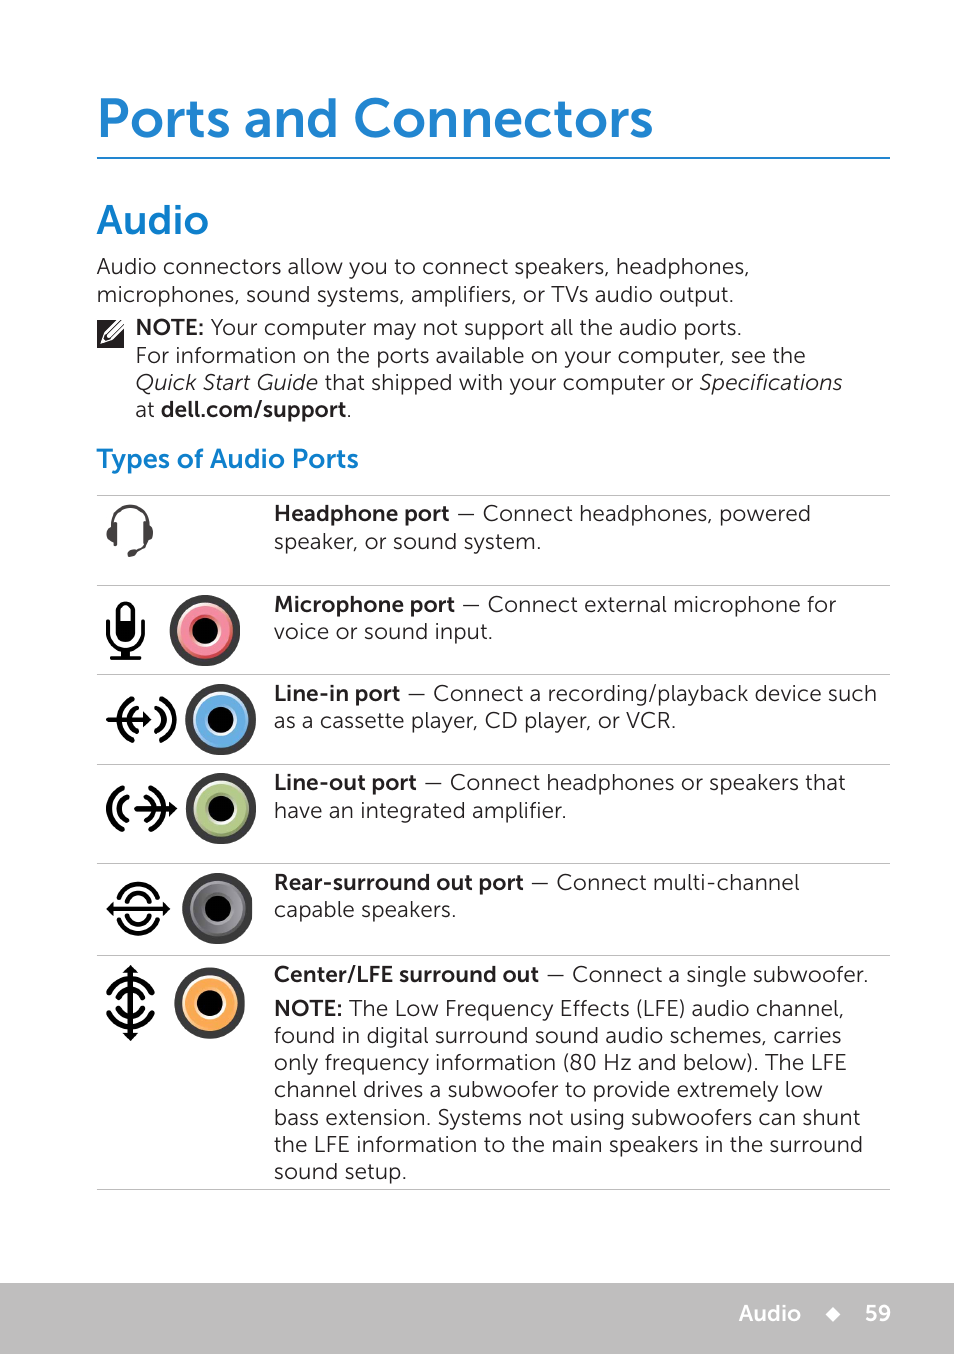 Ports and connectors, Audio, Types of audio ports | Dell